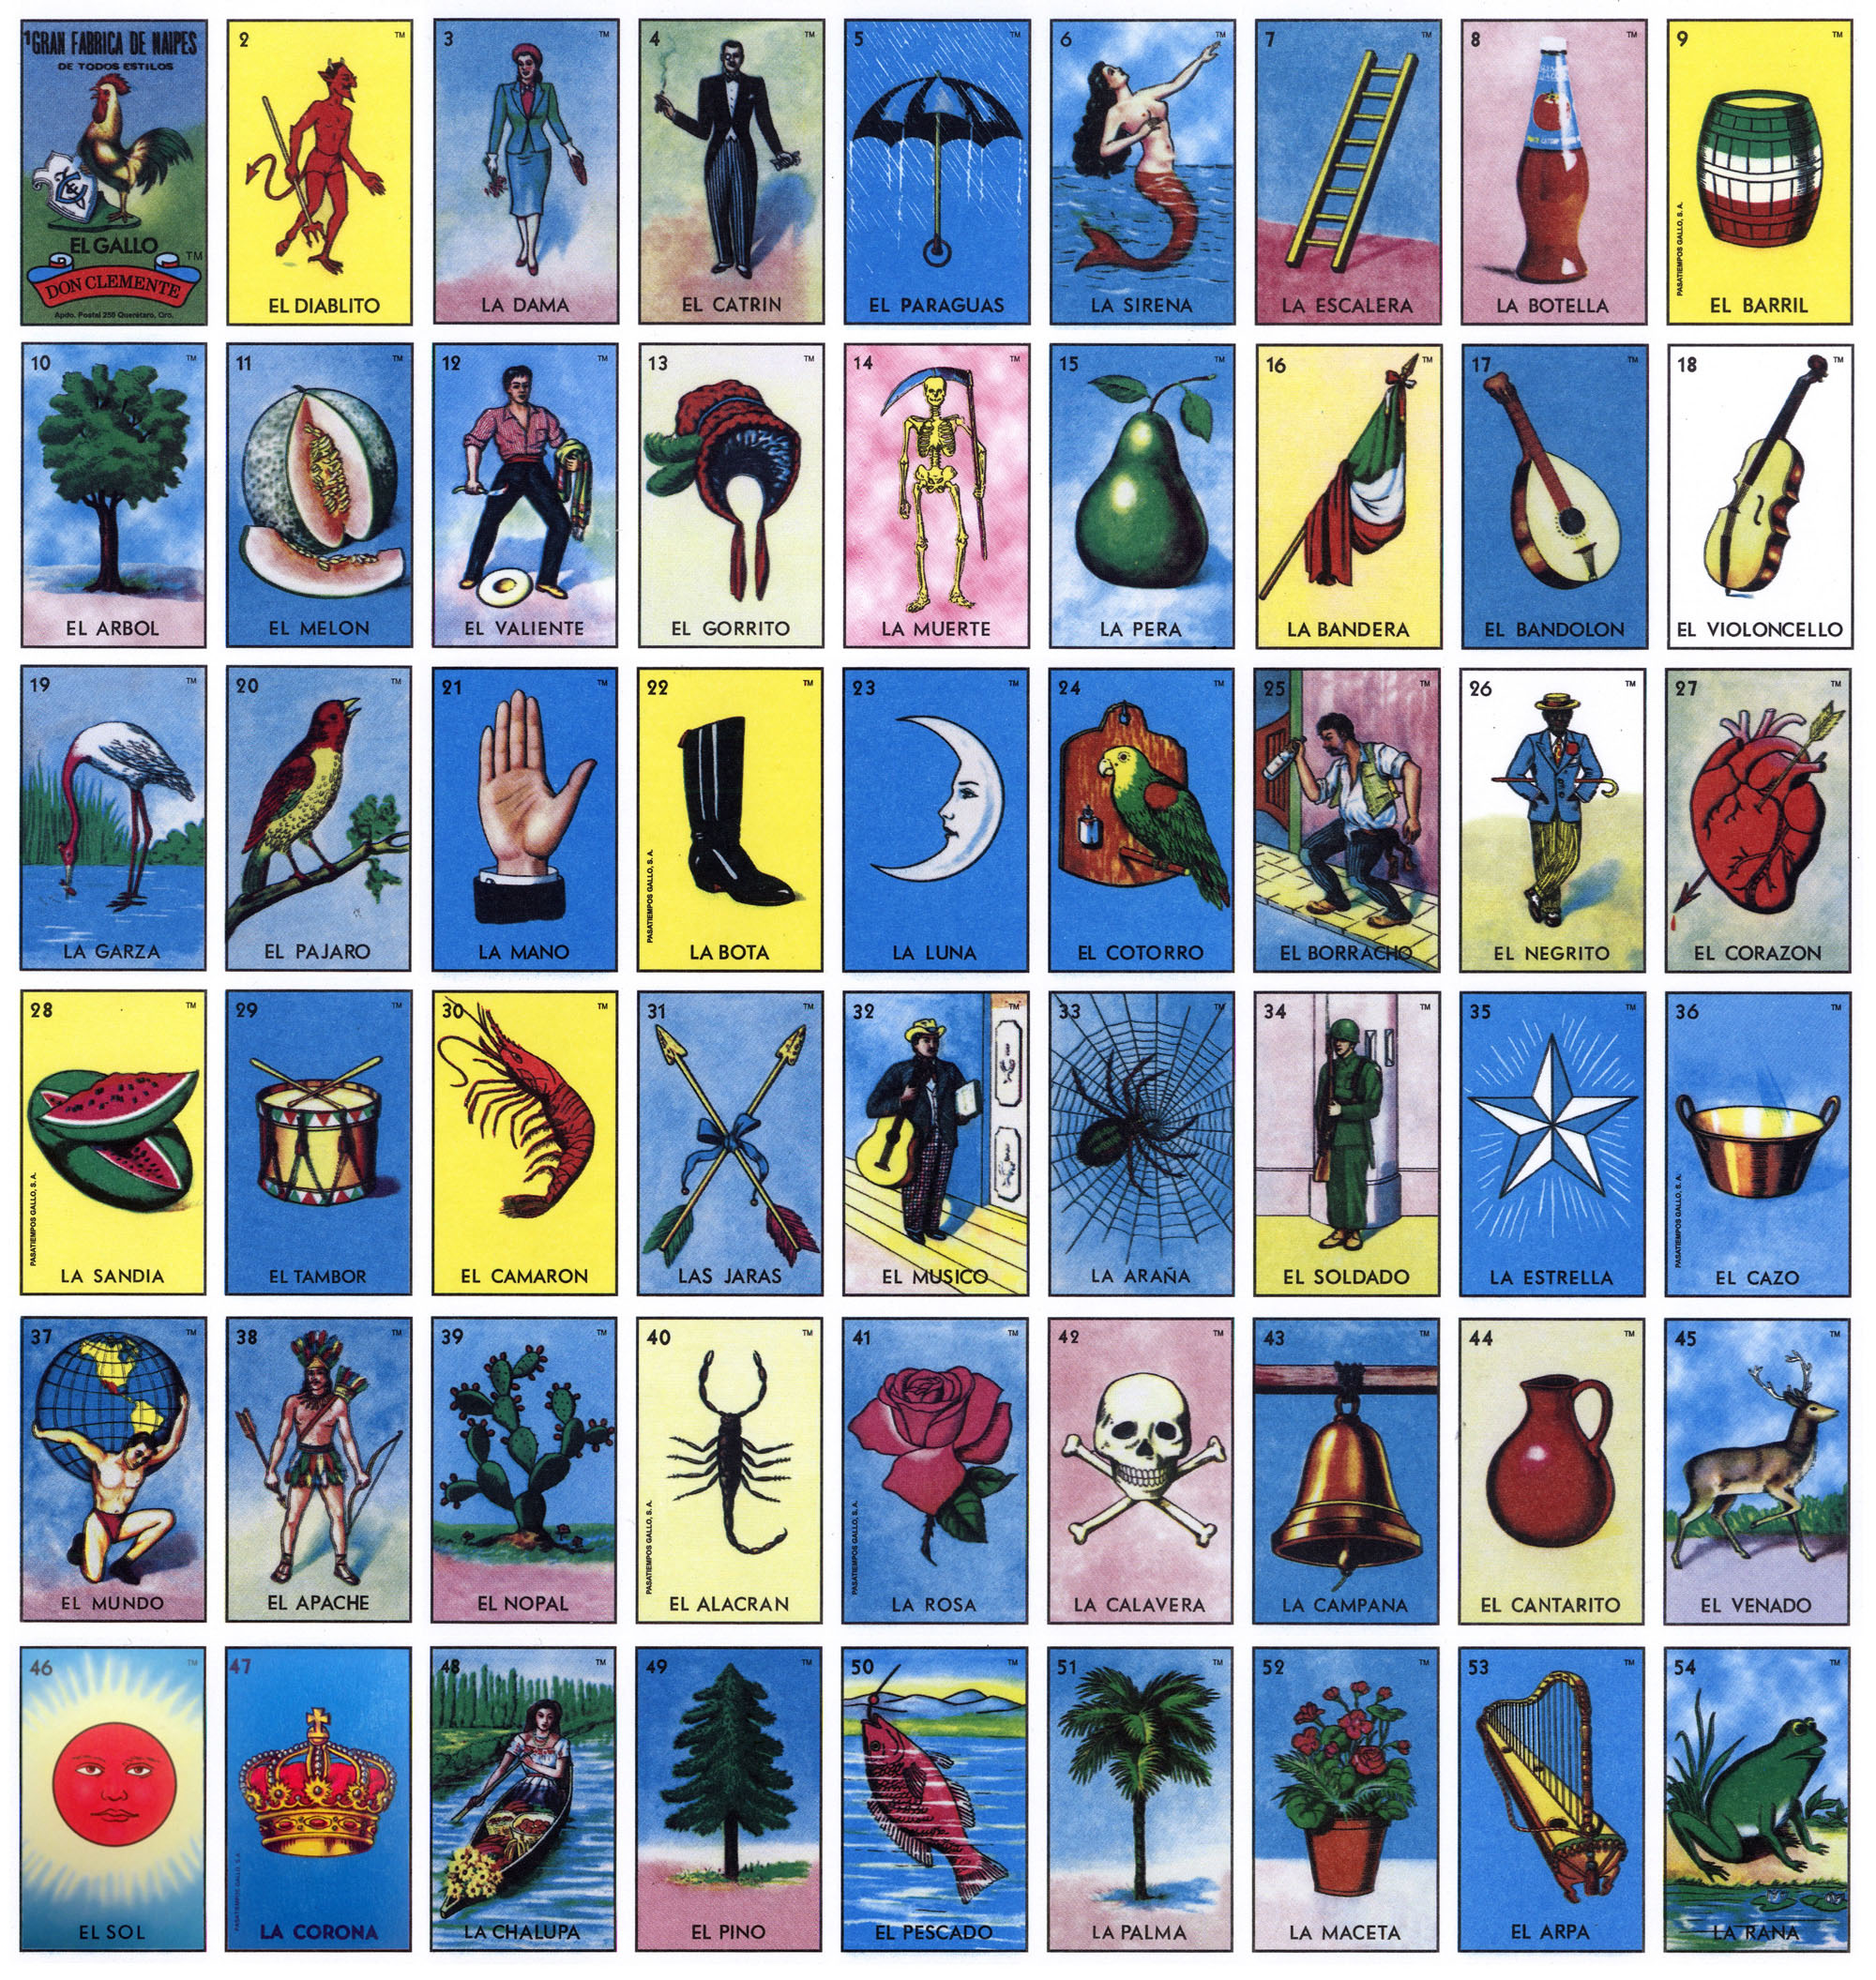 The classic Loteria cards. TM & © Don Clemente / Pasatiempos Gallo, Inc.